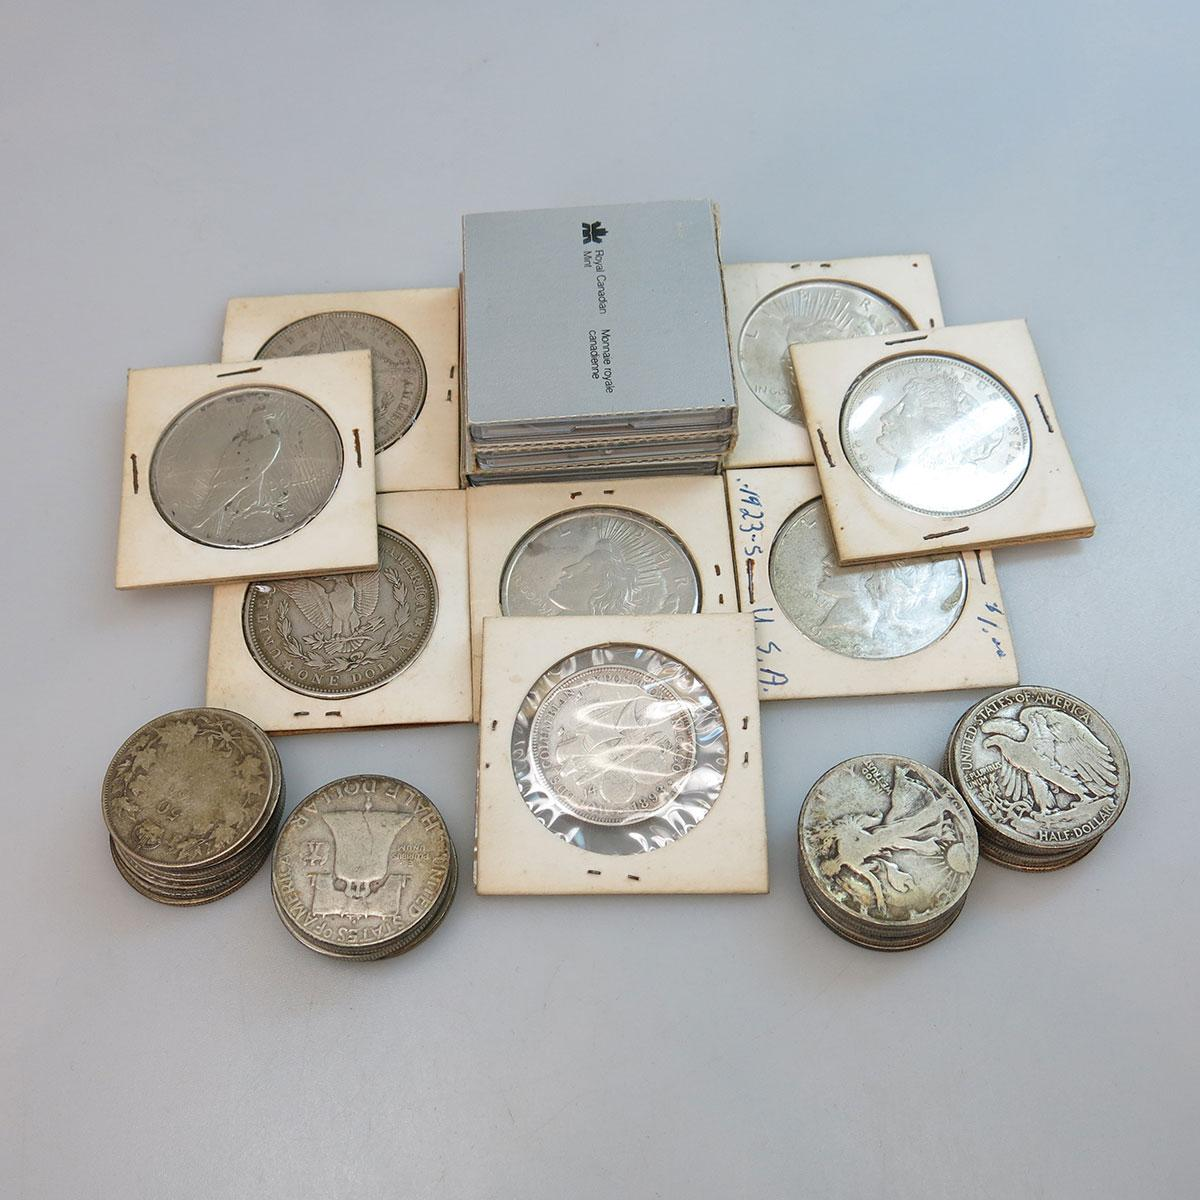 Quantity Of Canadian And American Silver Coins